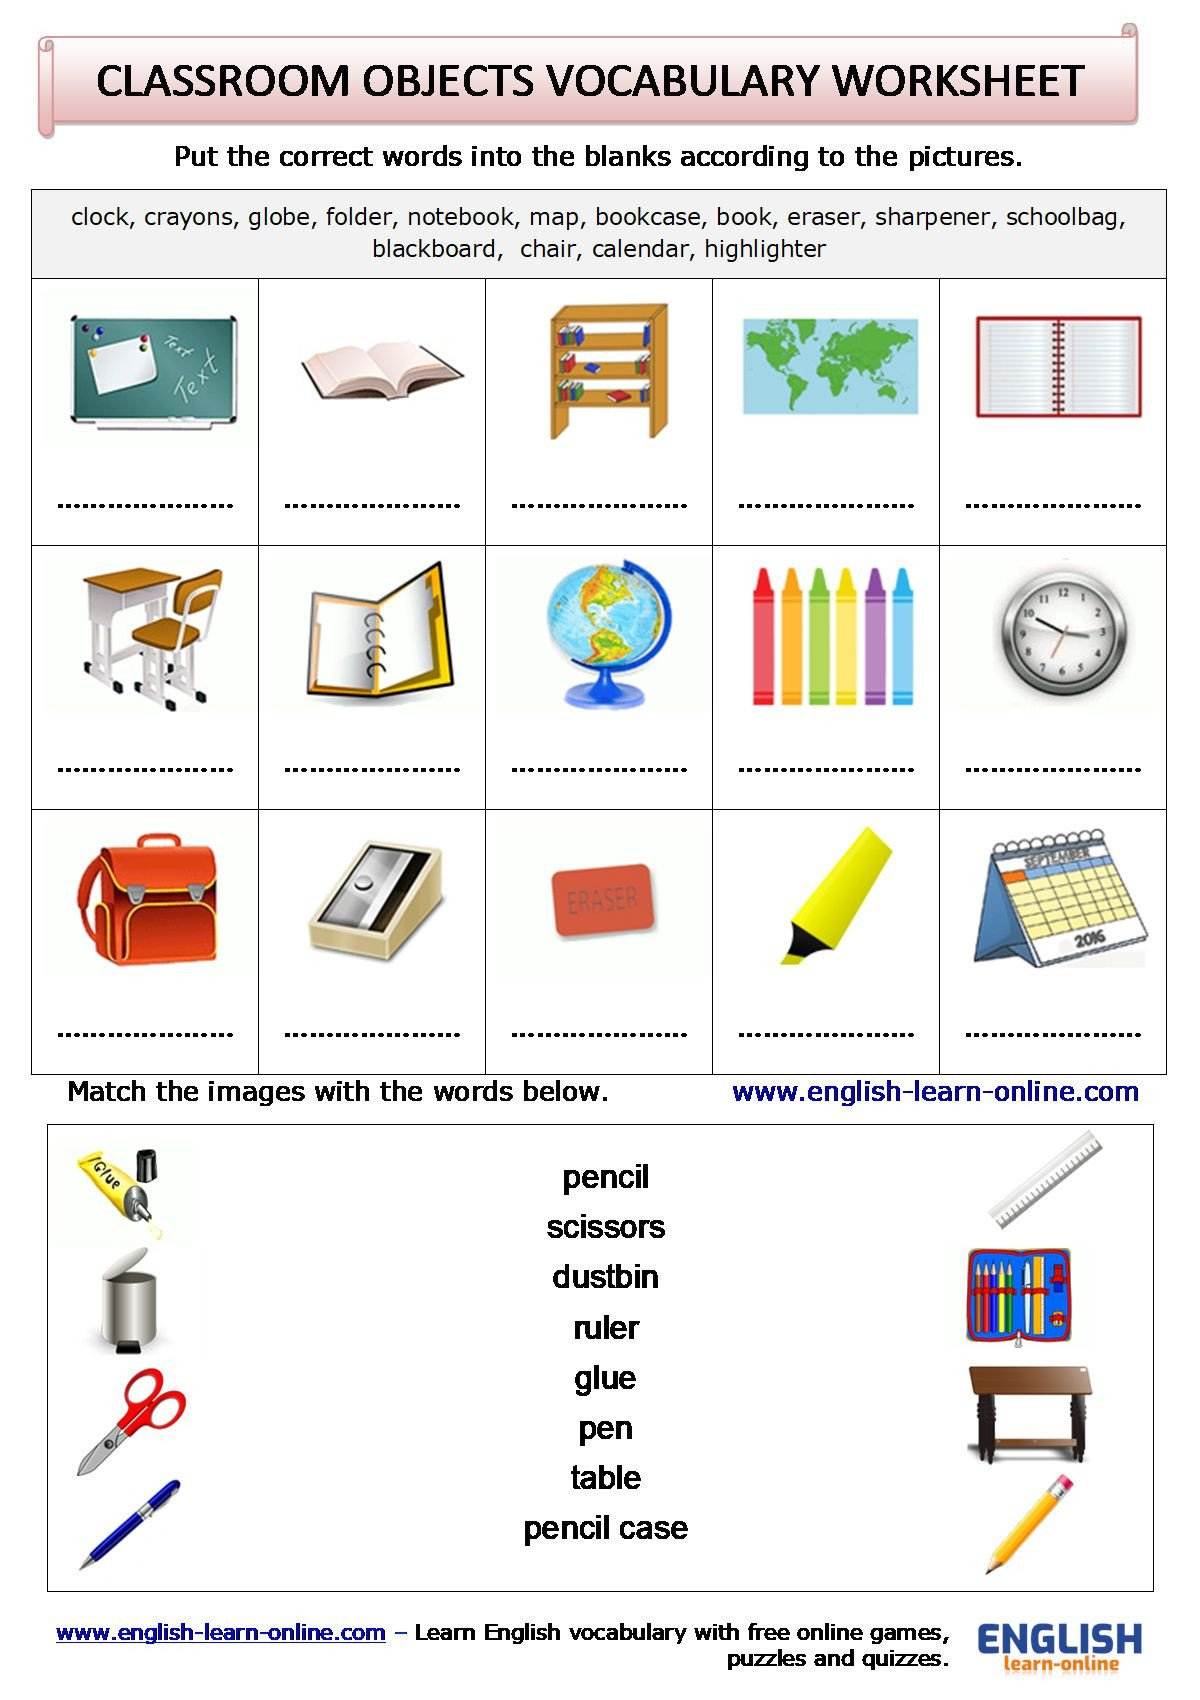 Classroom Objects Worksheets Pdf Classroom Objects Vocabulary In English with Games